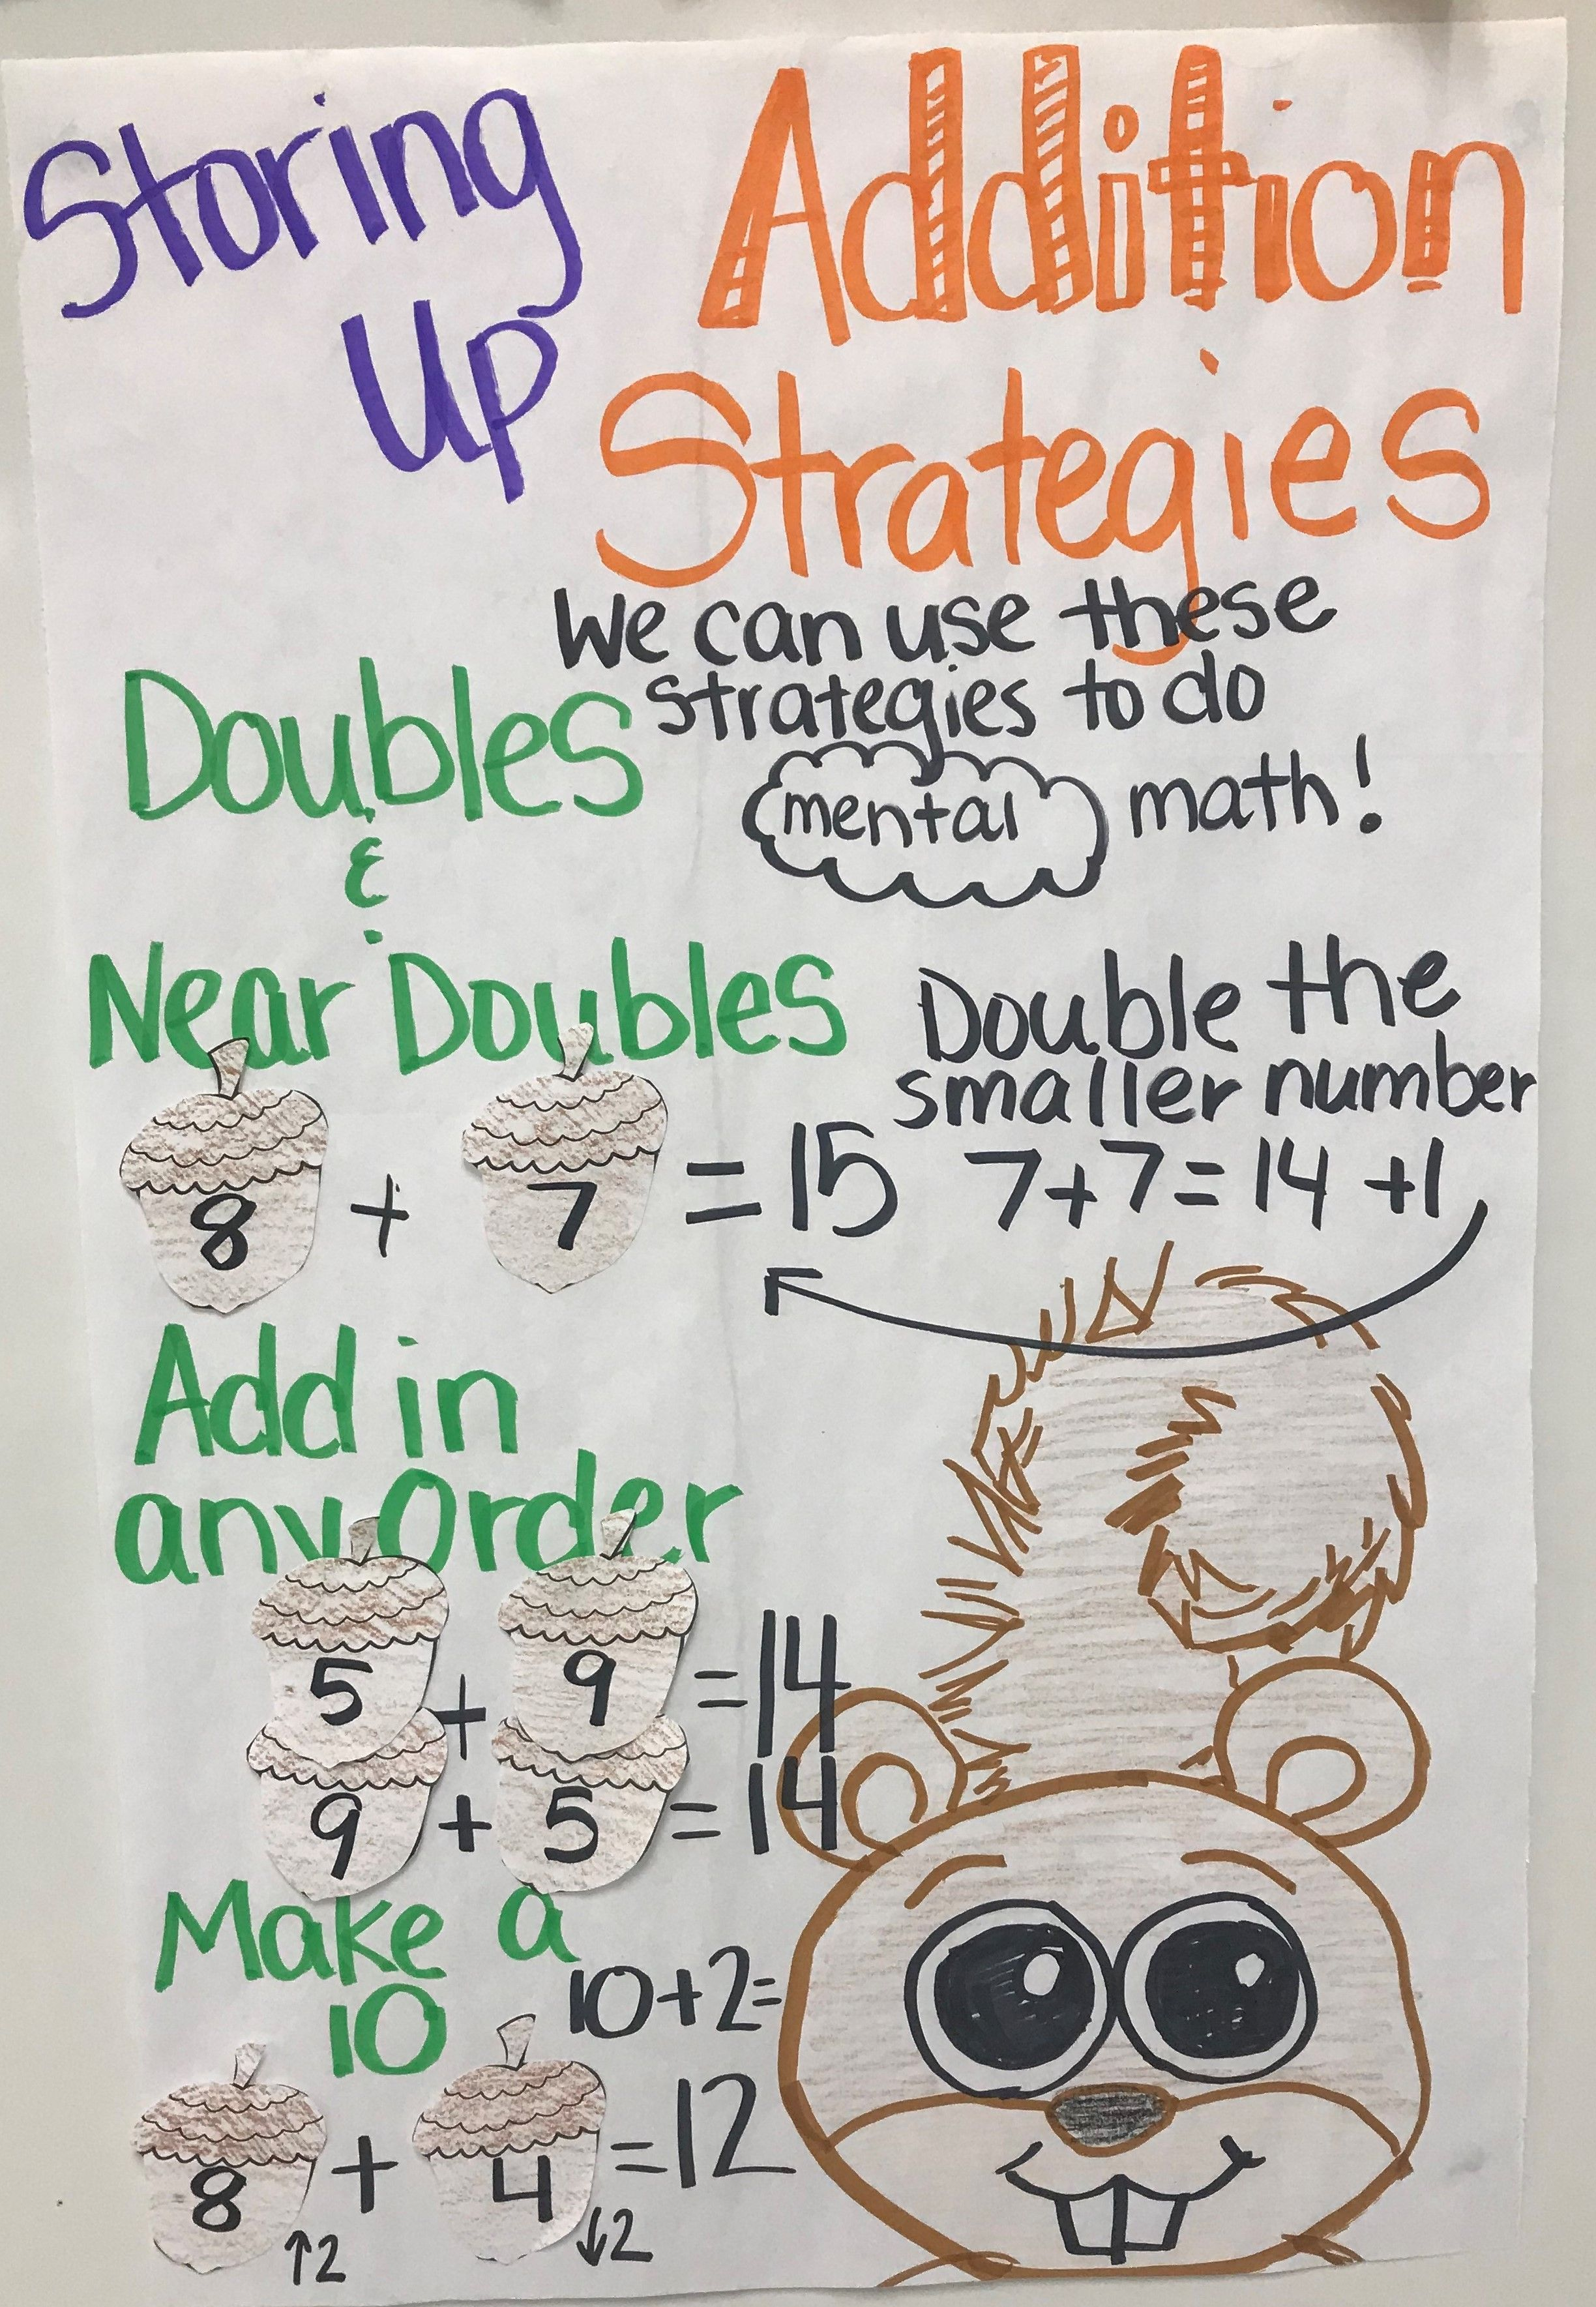 Storing Up Addition Strategies